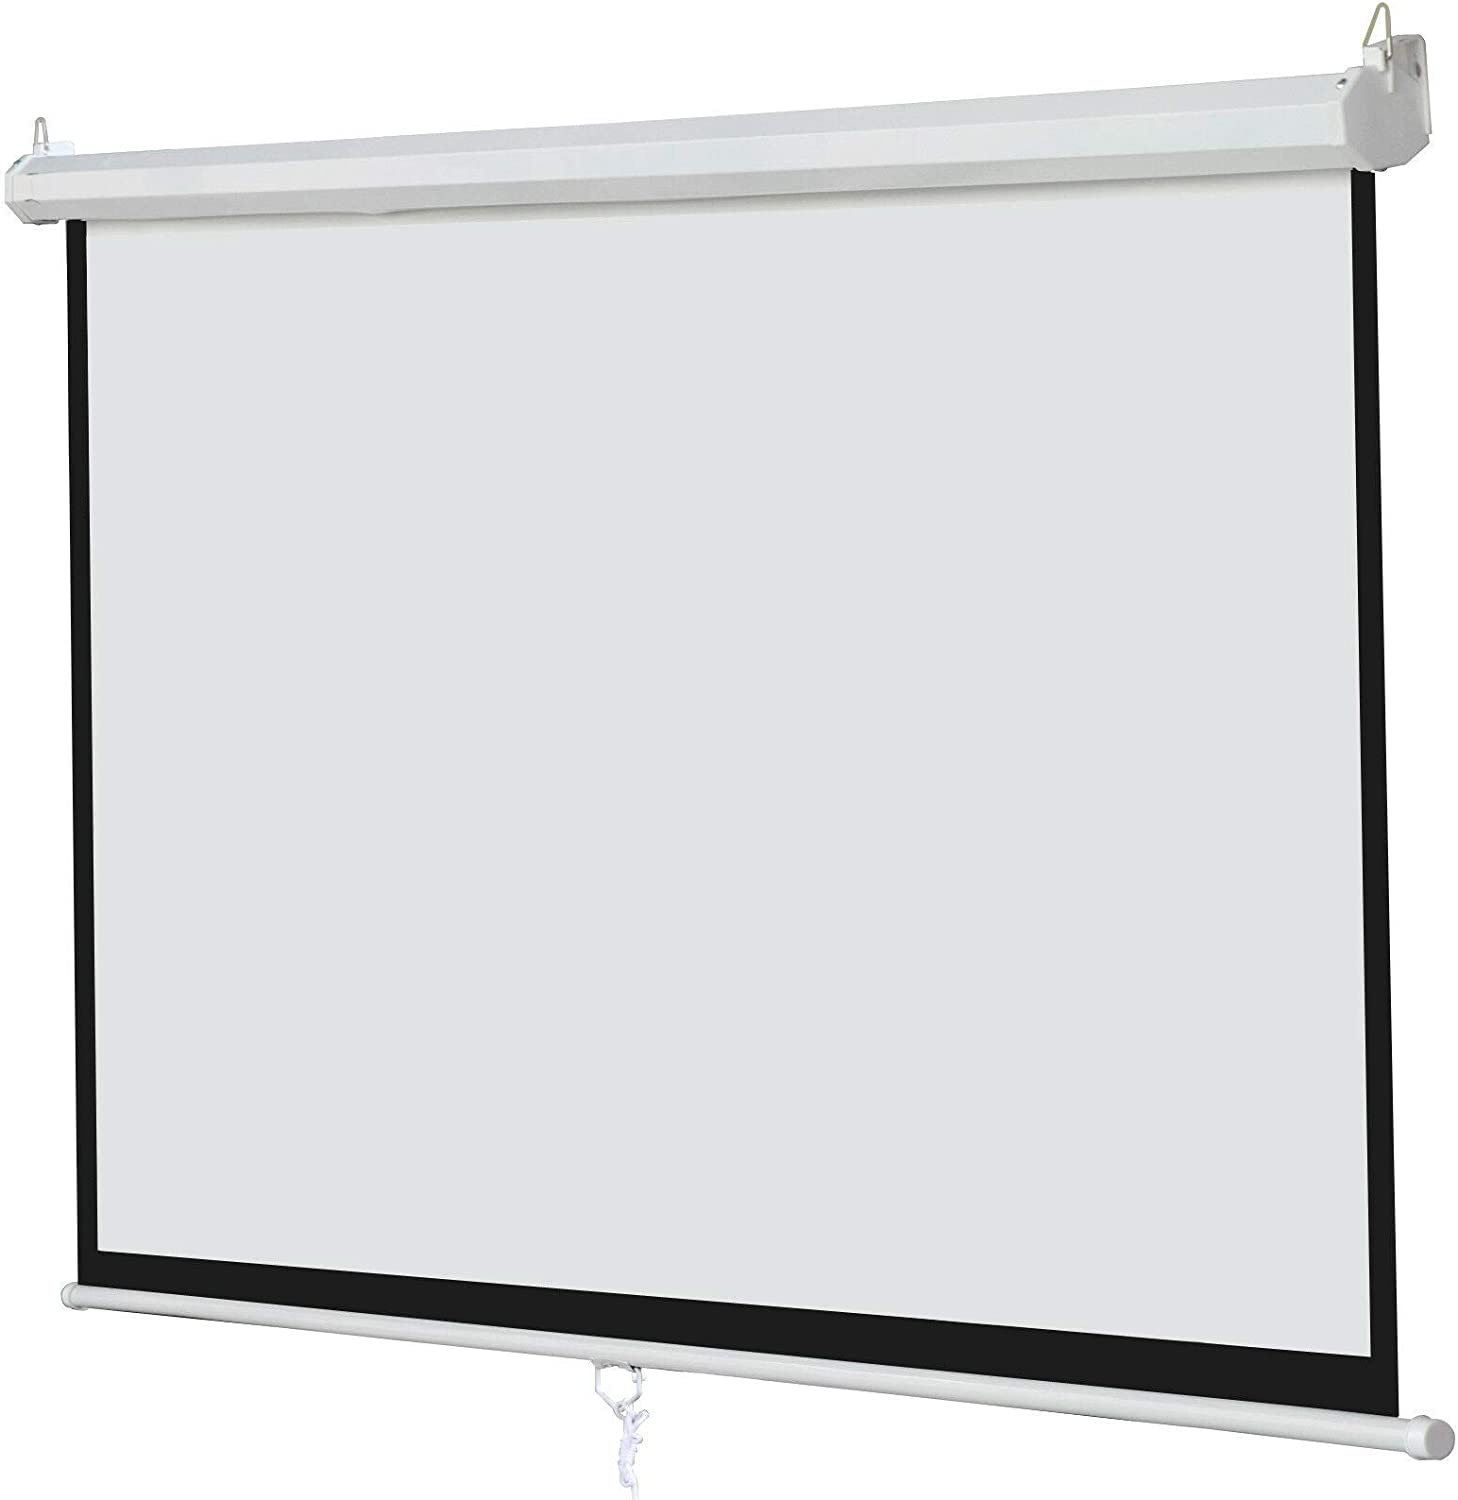 100 Inch 16:9 Manual Pull Down Projector Projection Screen Home Theater Movie